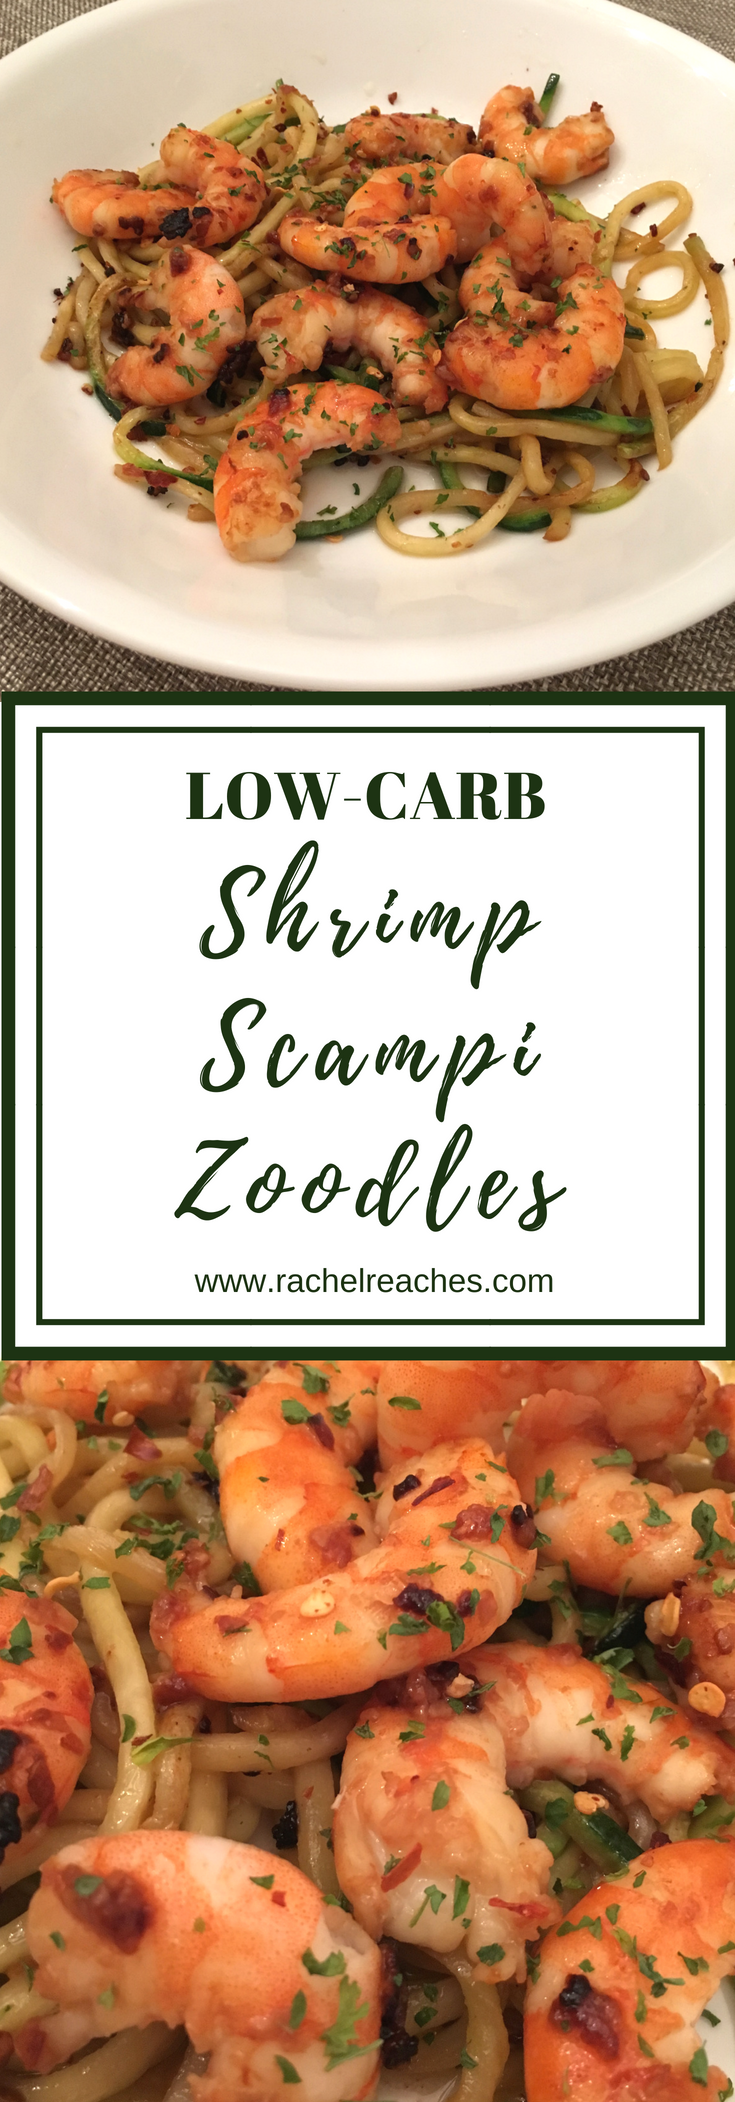 Shrimp Scampi Zoodles - Healthy Recipes.png